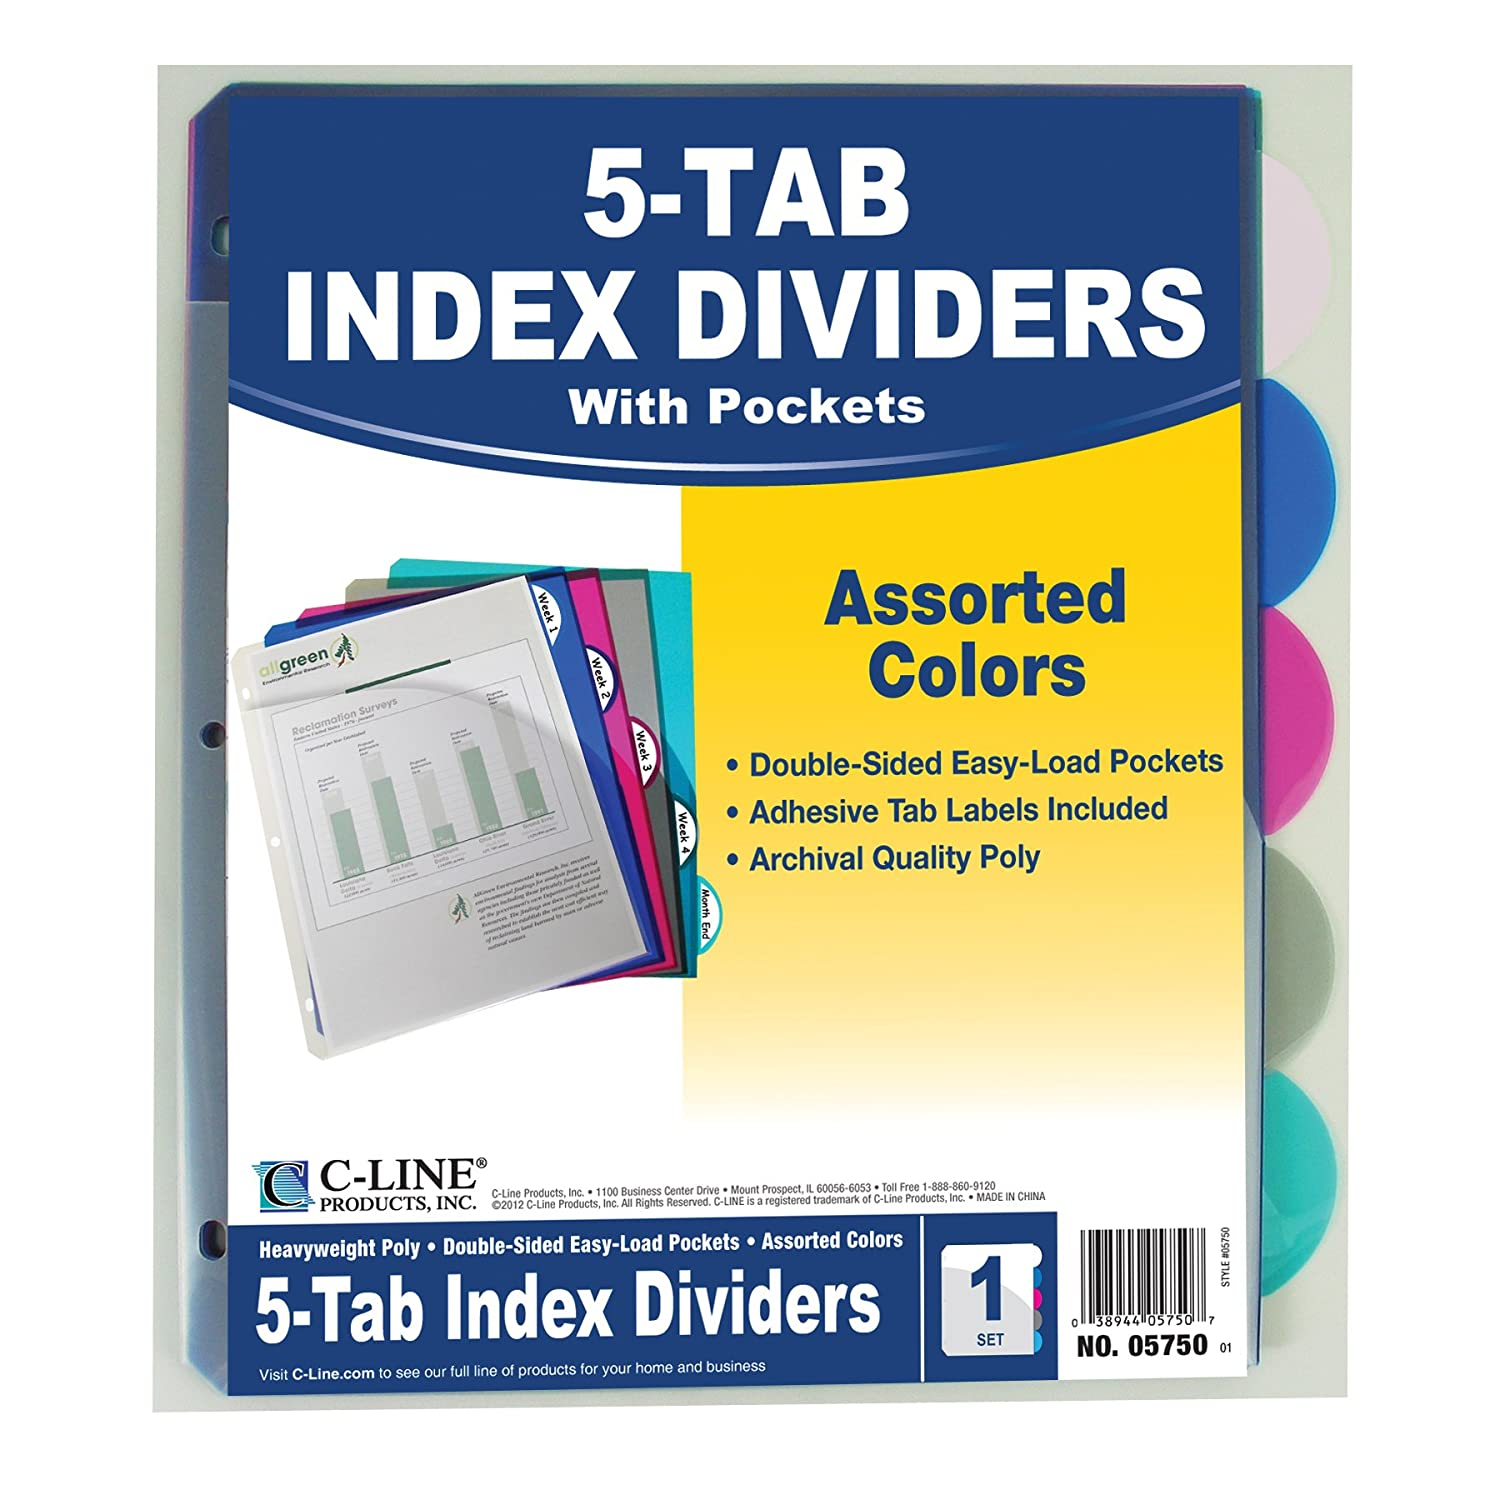 C-Line Polypropylene Binder Index Dividers with Double-Sided Slant Pockets, One 5-Tab Set, Assorted Colors (05750) C-Line Products Inc.